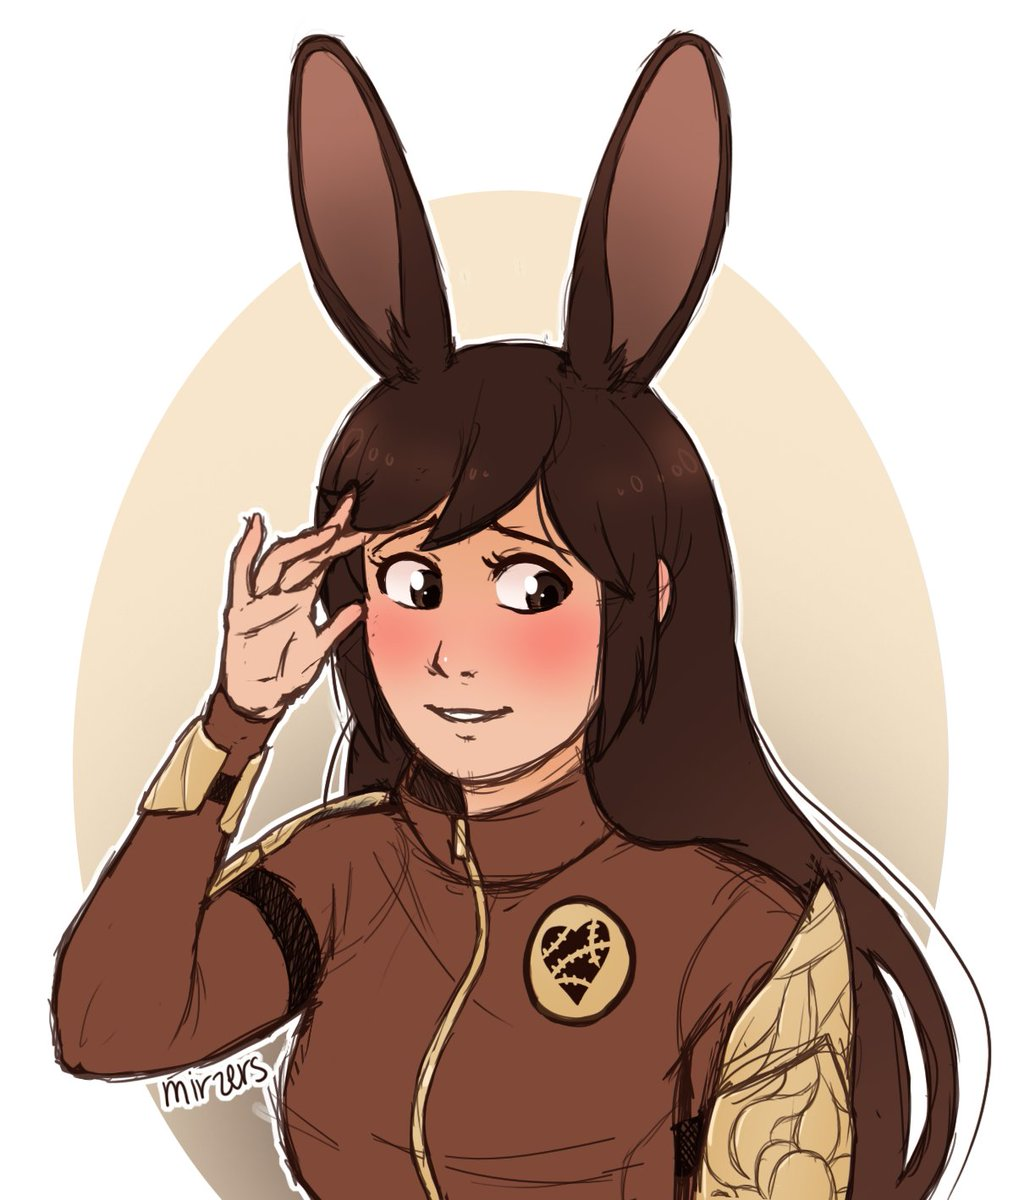 RWBY Art Challenge Day 21: a faunus character Of course I went with my girl, Velvet &lt;3 @CaitiWard_ #RWBY #RWBYAC<br>http://pic.twitter.com/uAW9uH4aId